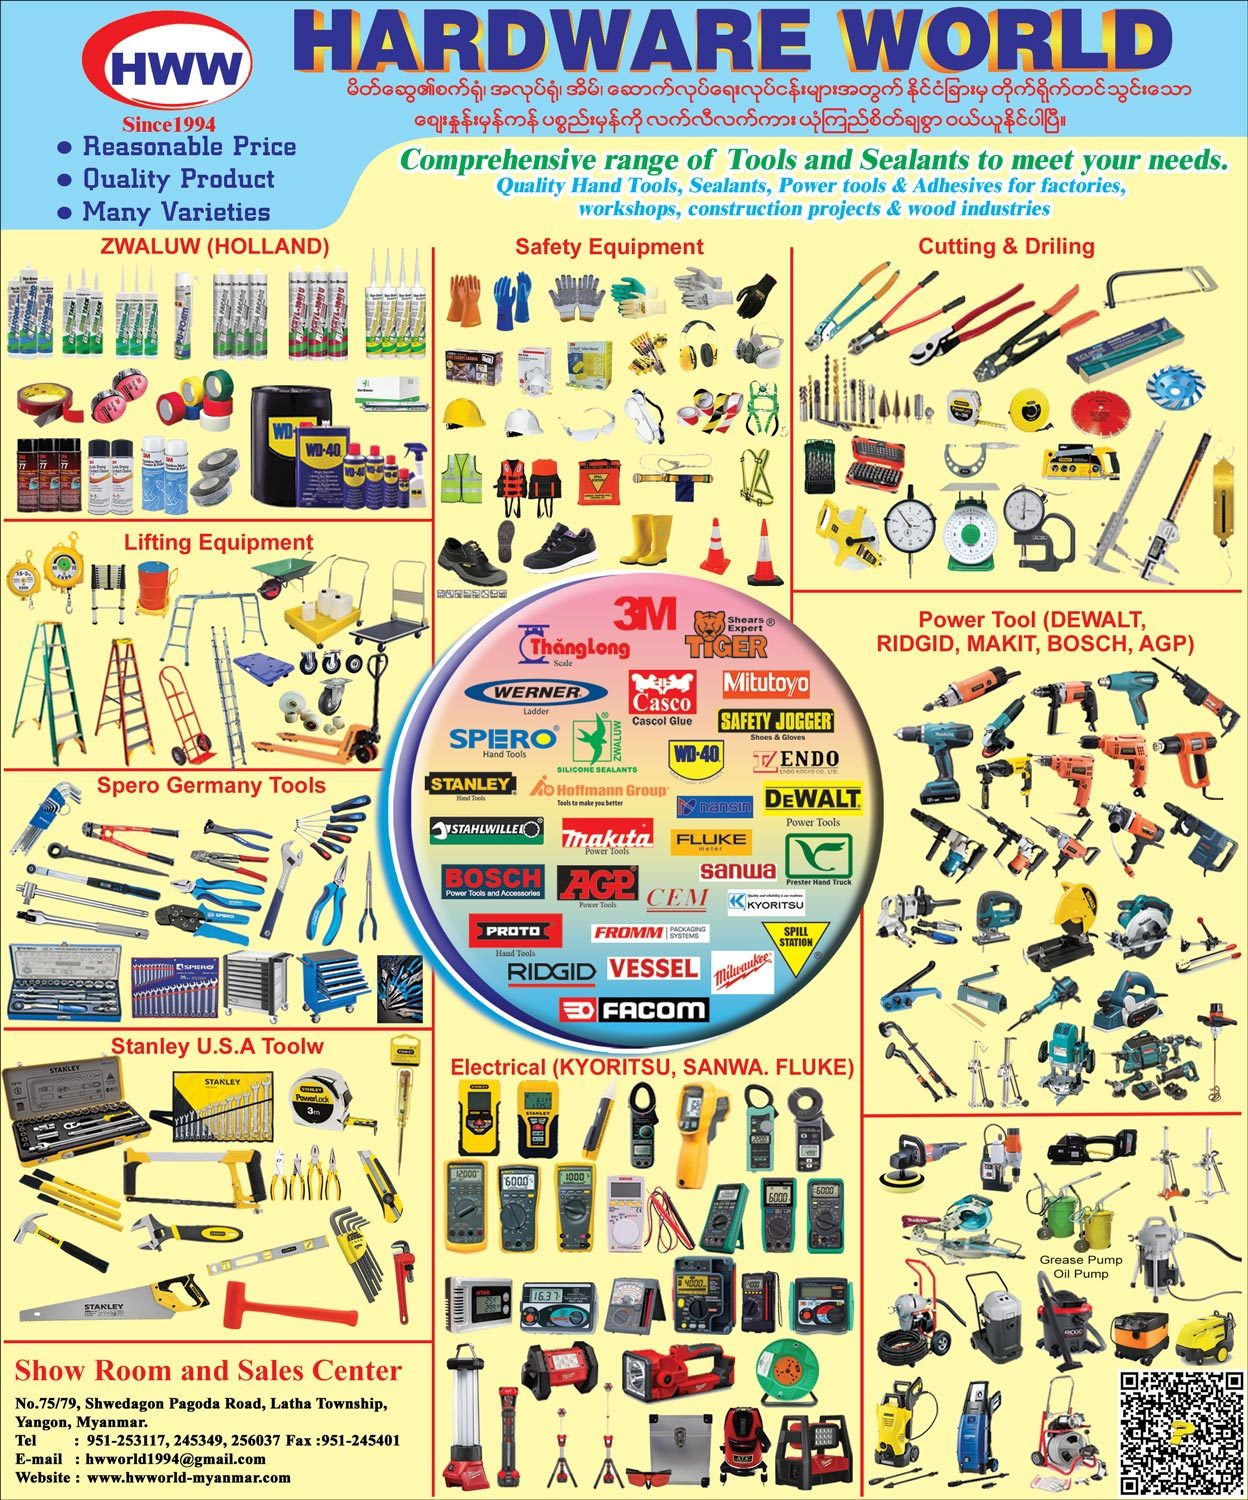 Hardware-World_Hardware-Merchants-&-Ironmongers_(A)_419.jpg